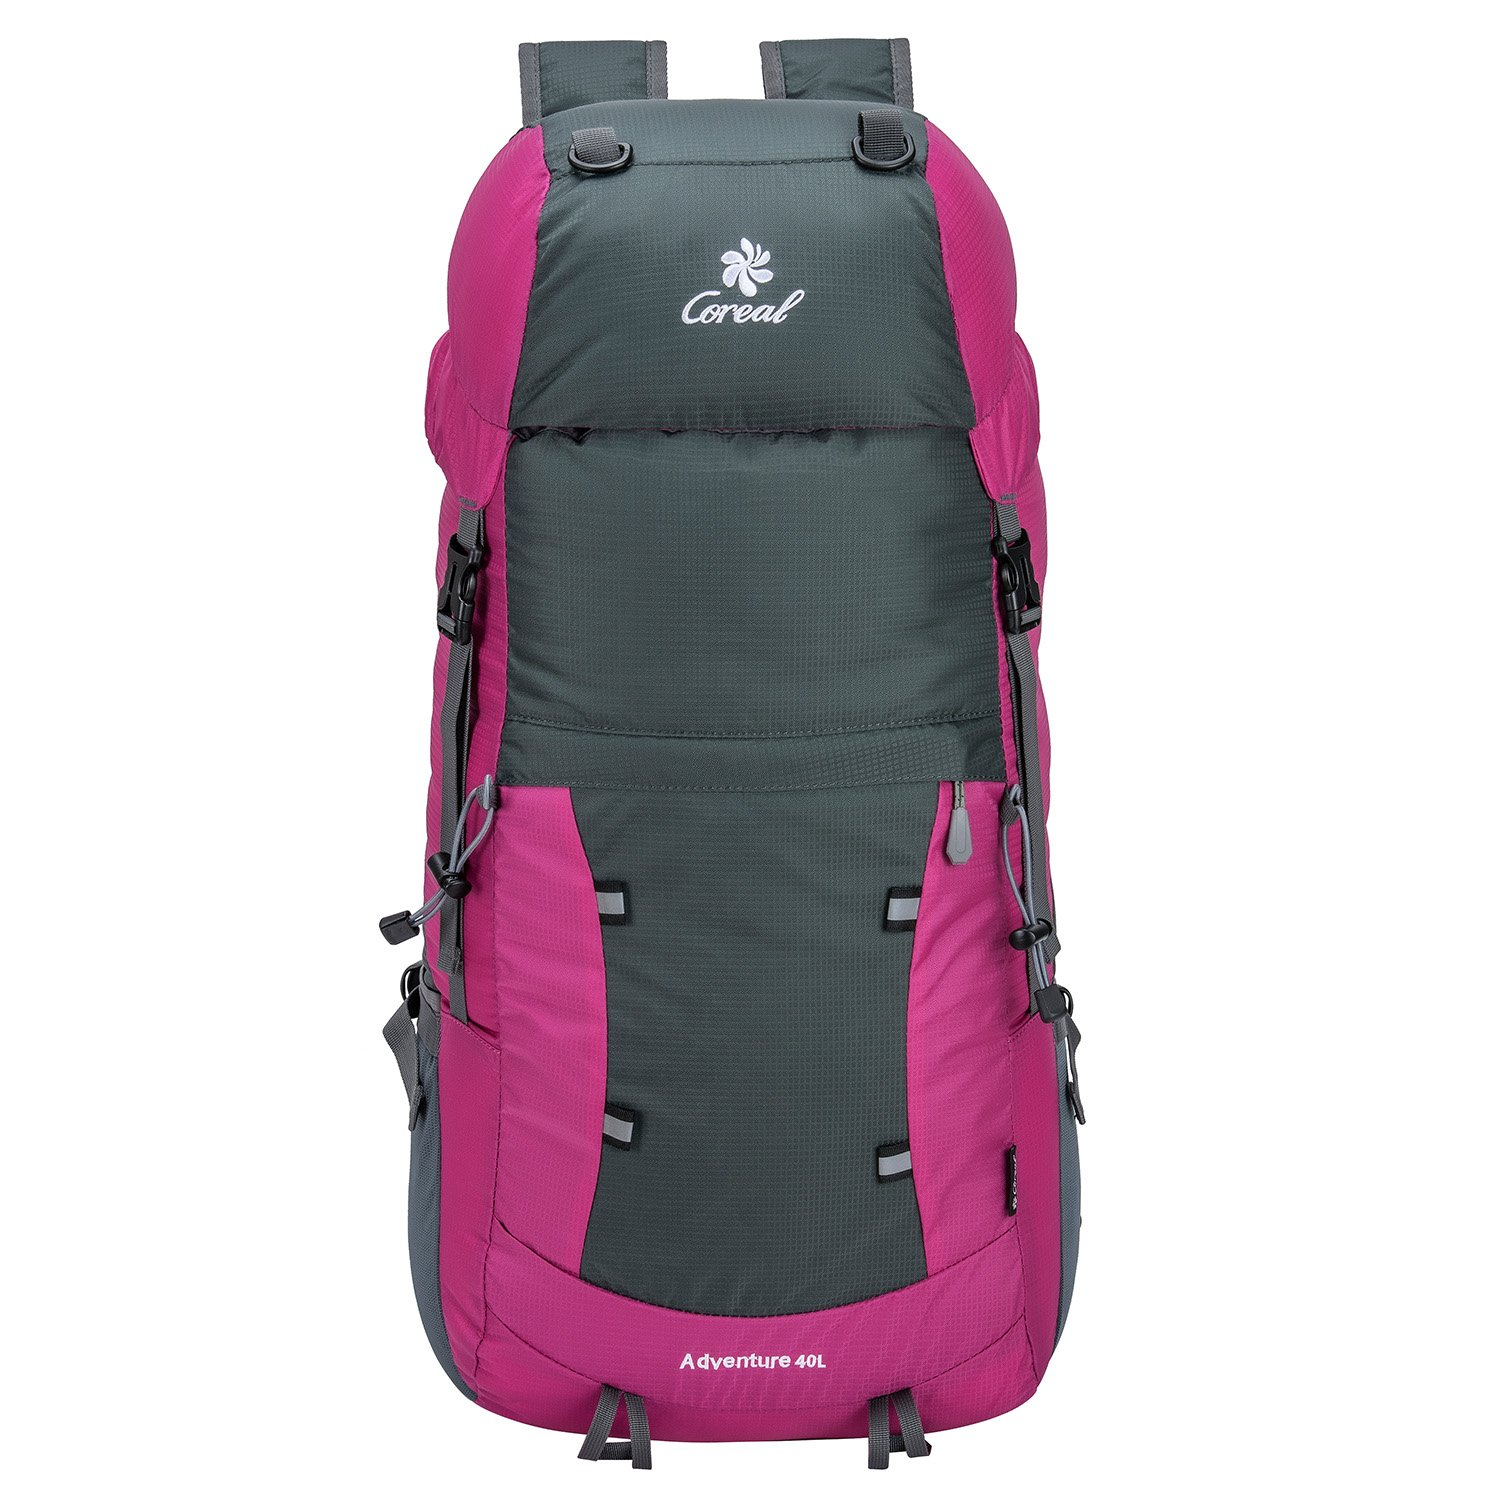 Coreal 40L Lightweight Packable Hiking Backpack Foldable Travel Trekking Daypack